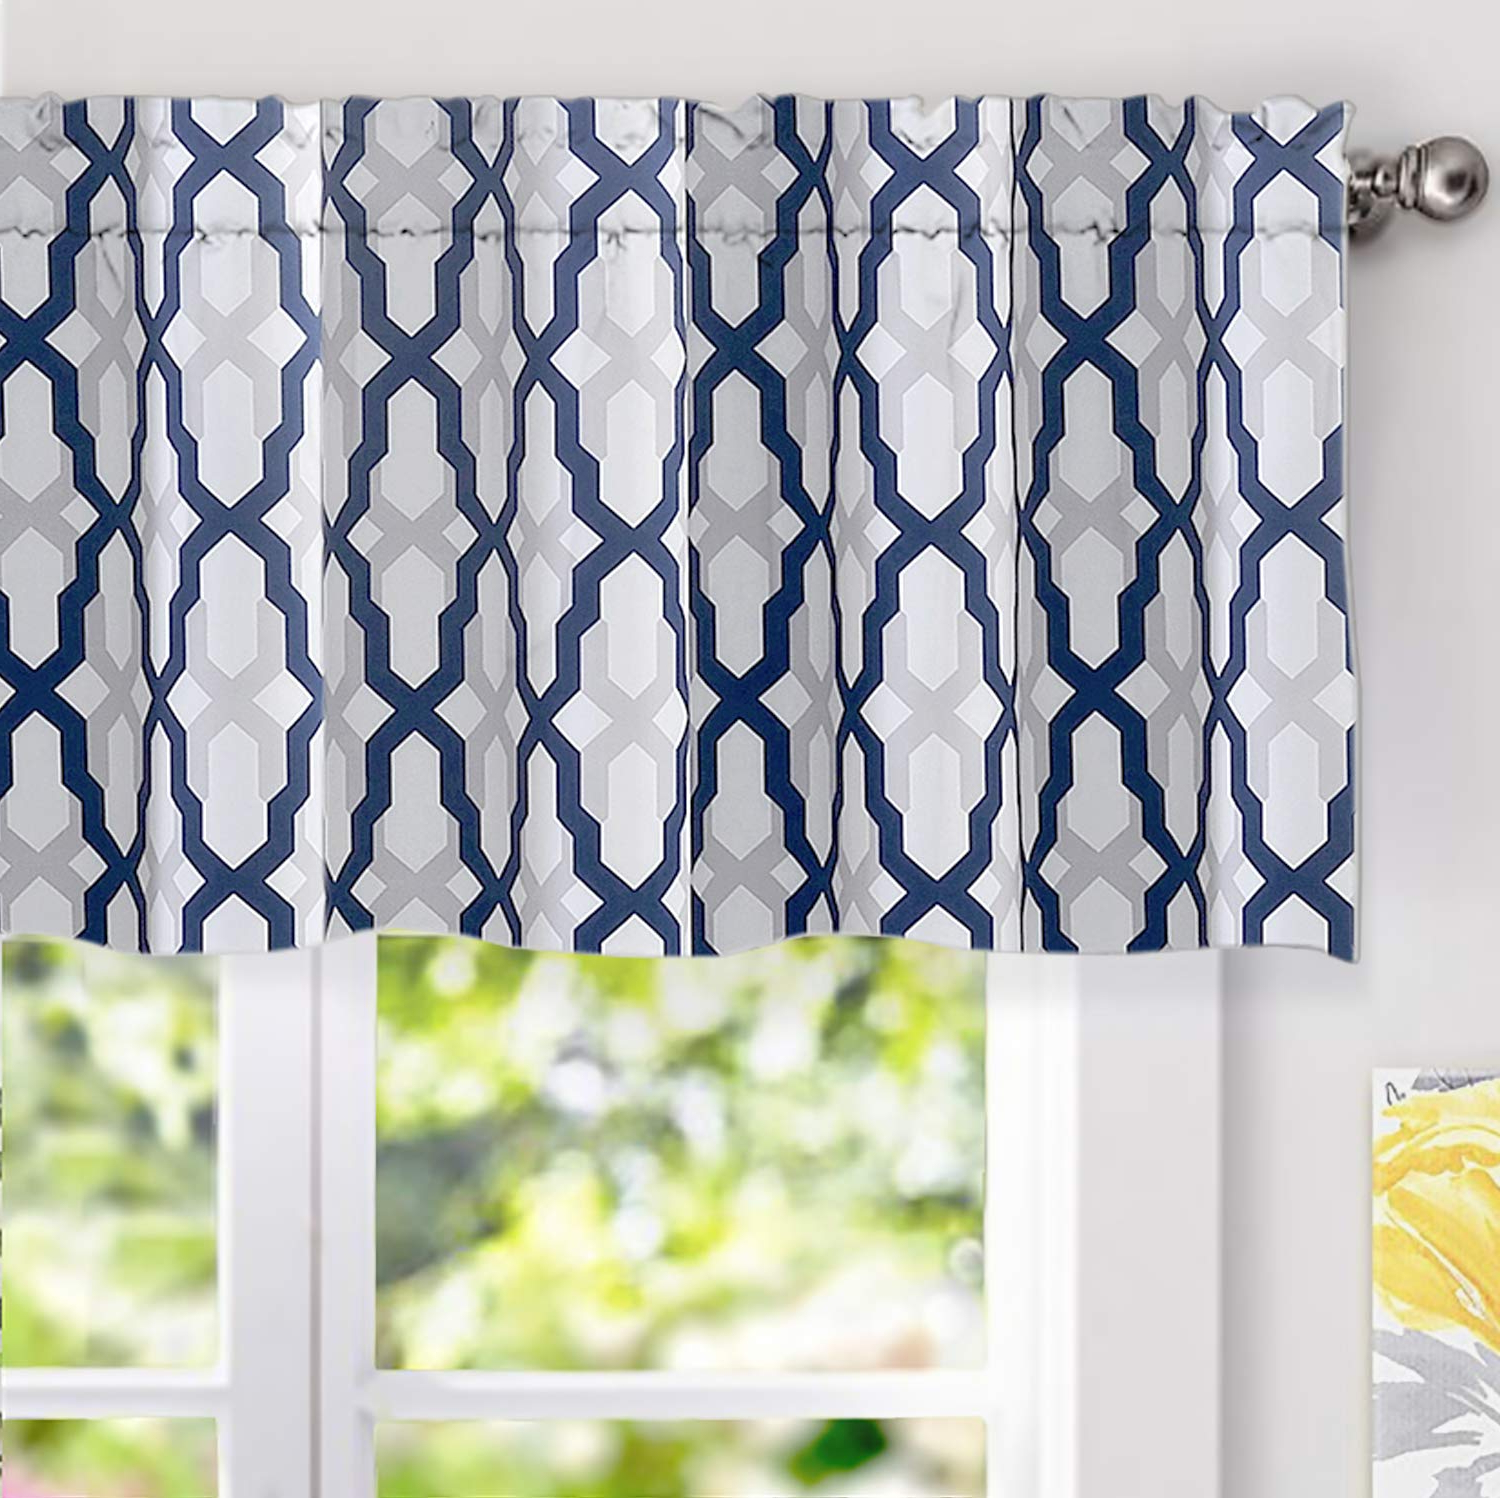 Trellis Pattern Window Valances With Regard To Popular Driftaway Mason Geometric Trellis Pattern Window Curtain Valance Rod Pocket 52 Inch18 Inch Plus 2 Inch Header Navy (View 2 of 20)